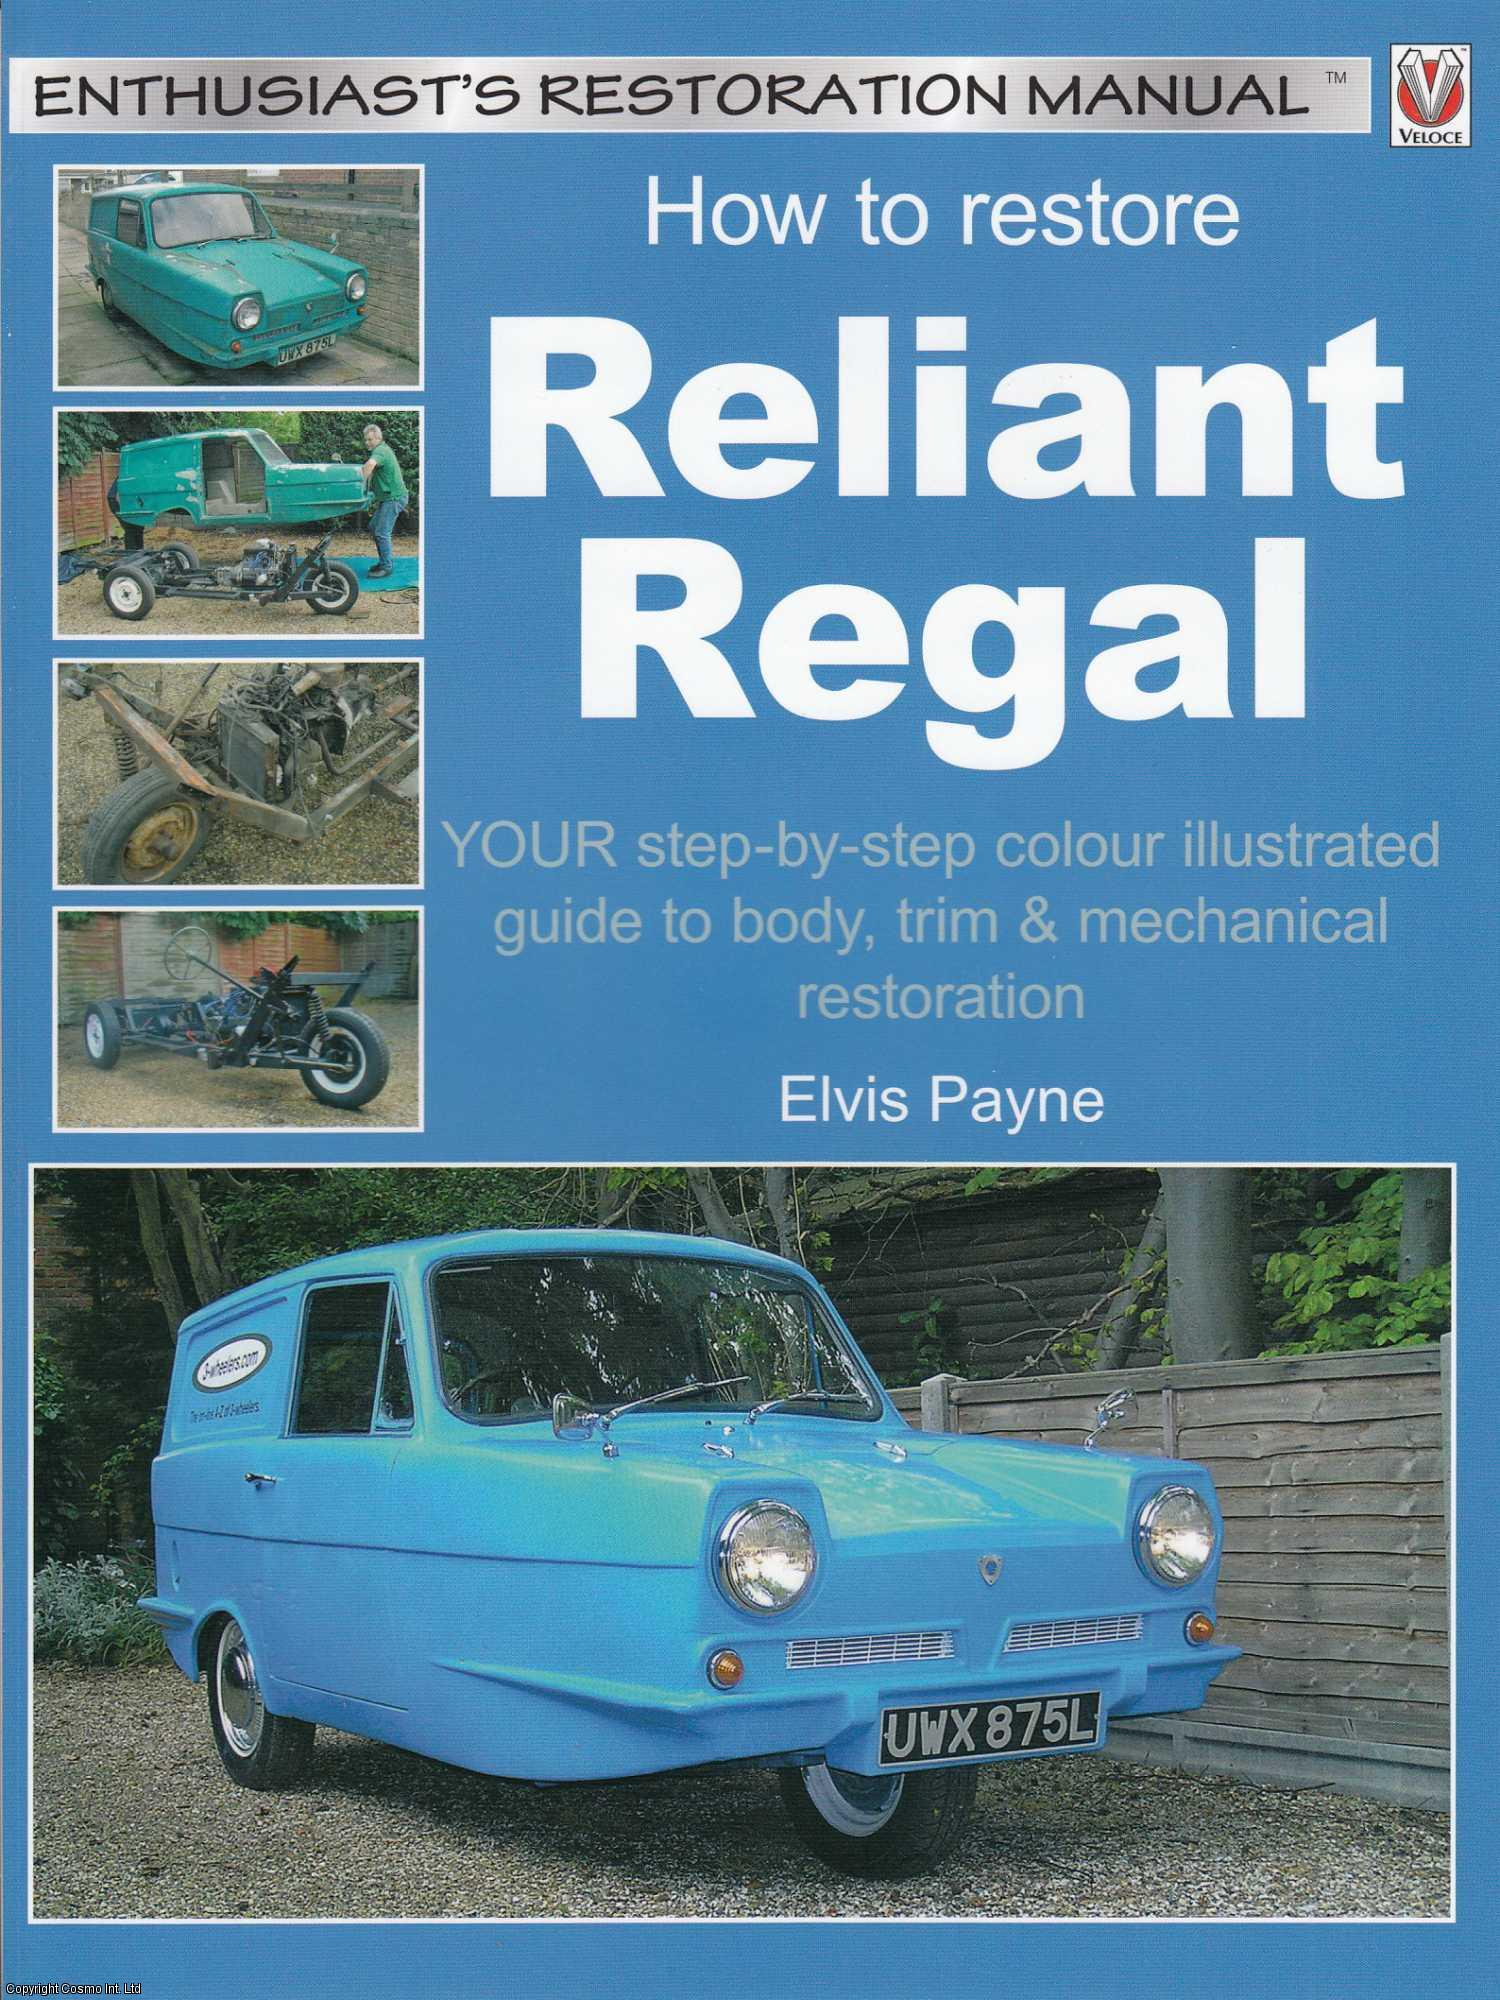 How to Restore Reliant Regal (Enthusiast's Restoration Manual) (Enthusiast's ., Payne, Elvis